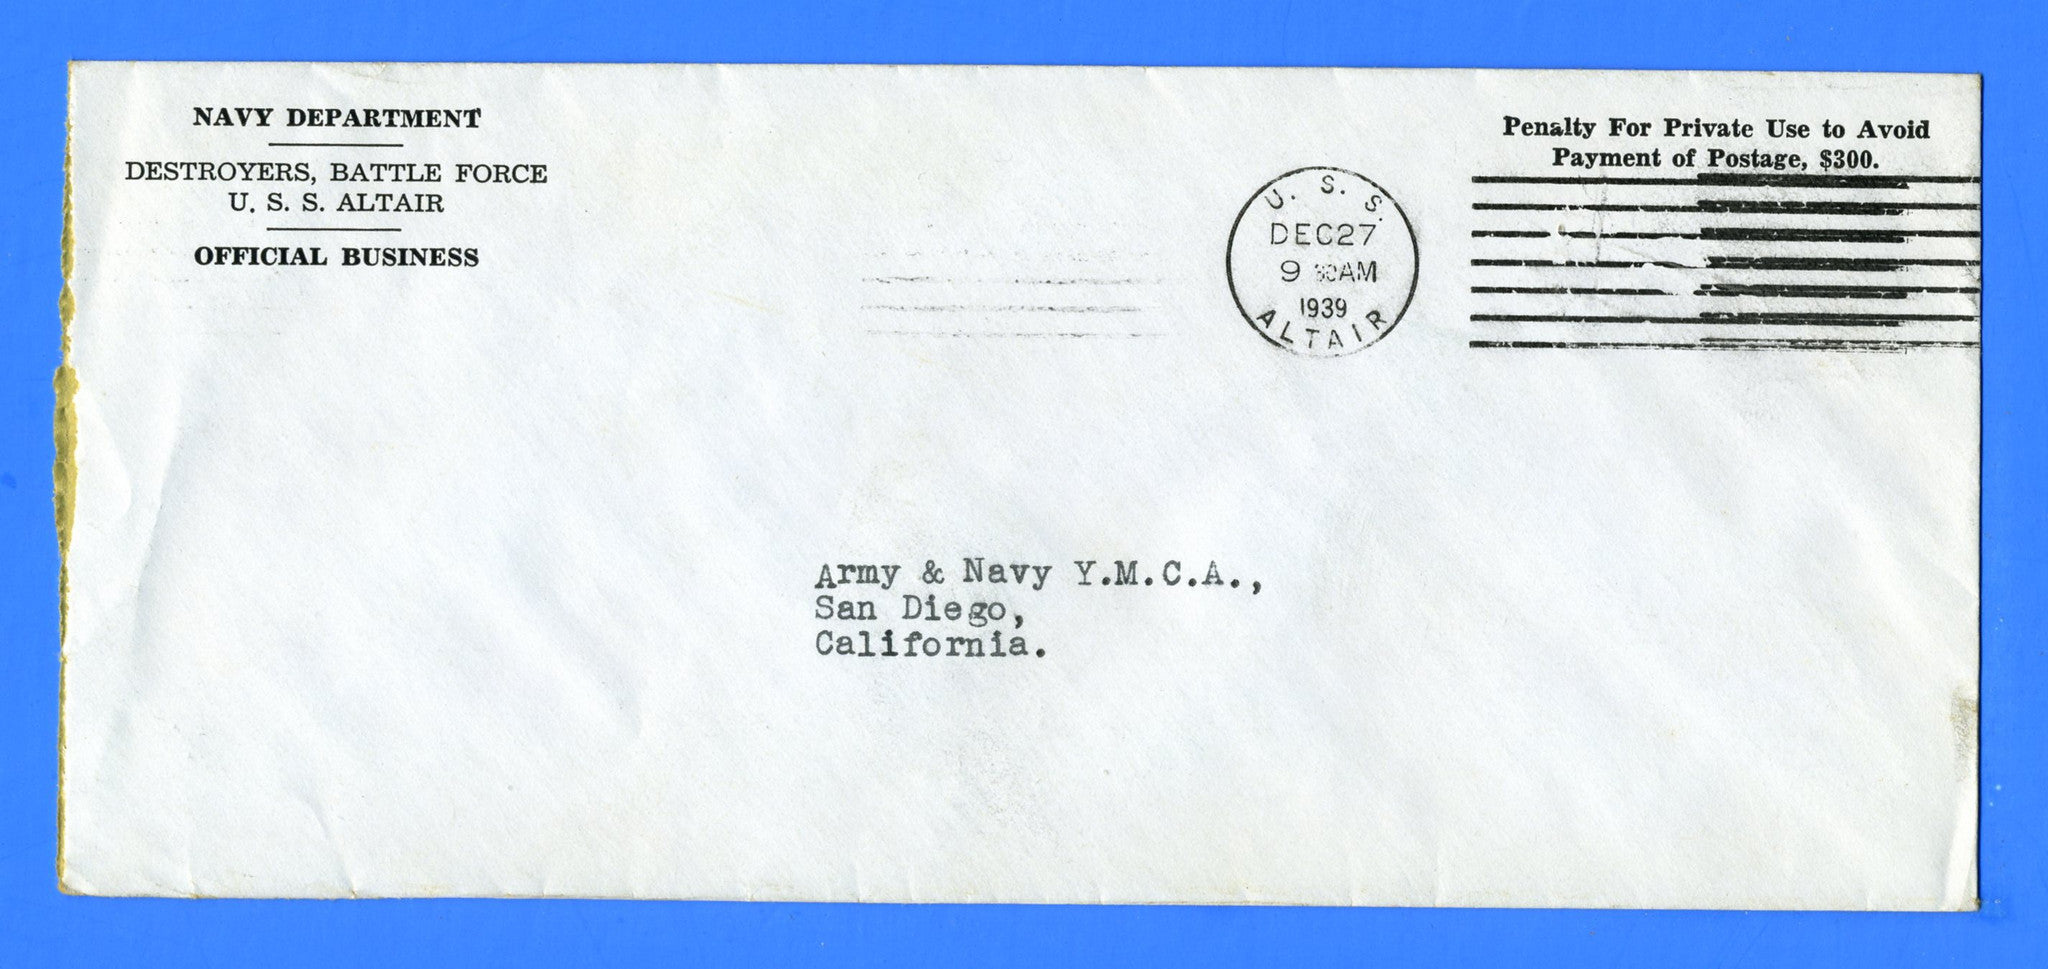 USS Altair AD-11 Official Mail December 27, 1939